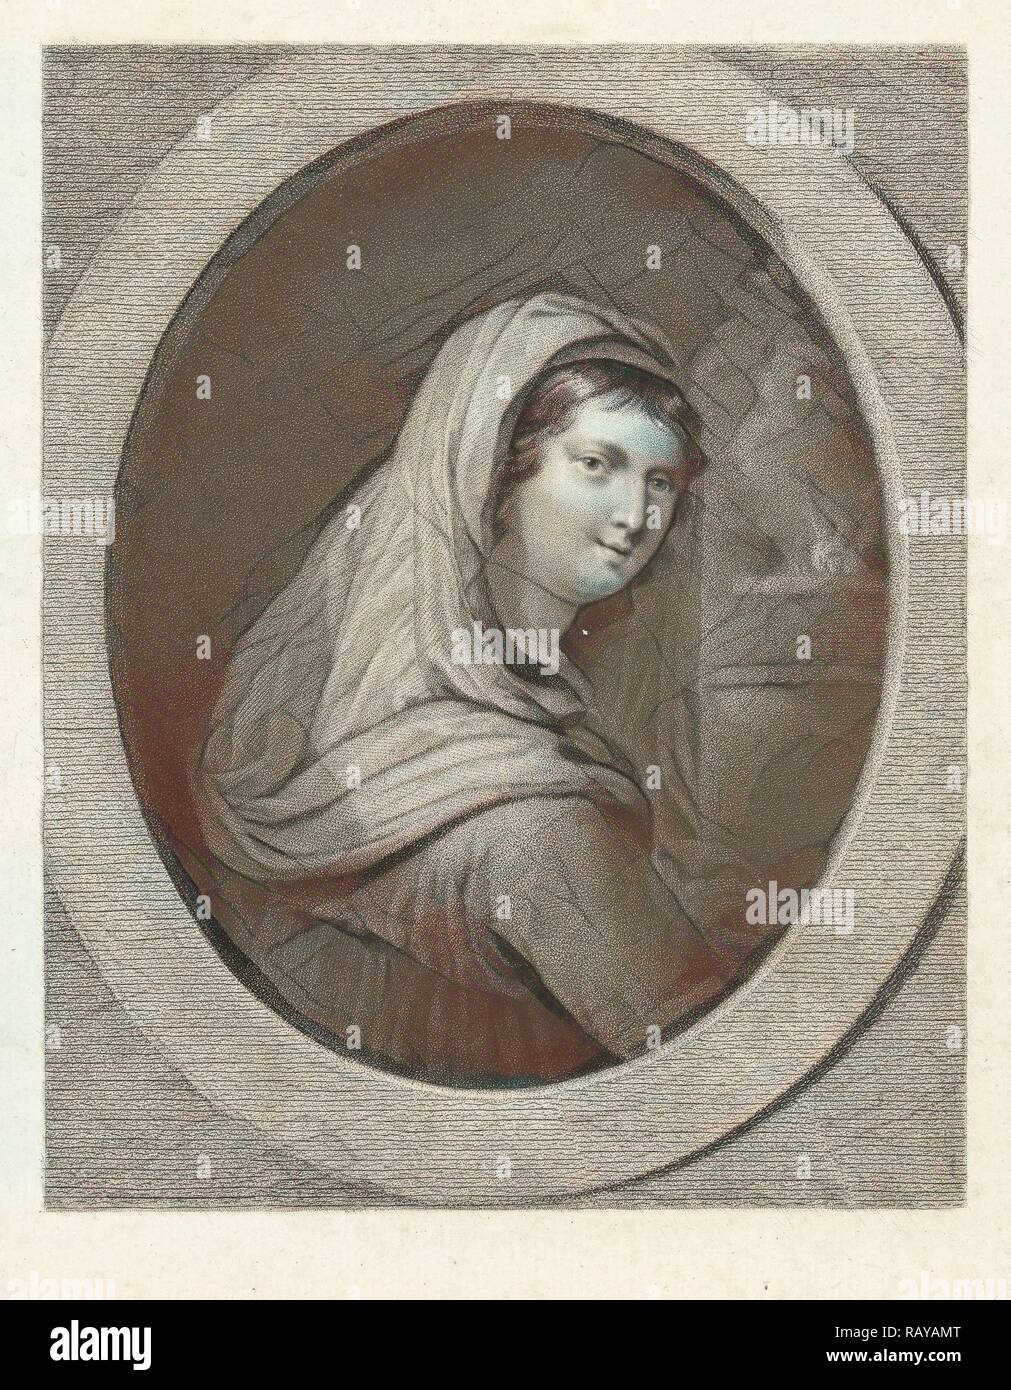 Young woman with a veil, in the background a fire, Lambertus Antonius Claessens, Guido Reni, c. 1829 - c. 1834 reimagined - Stock Image